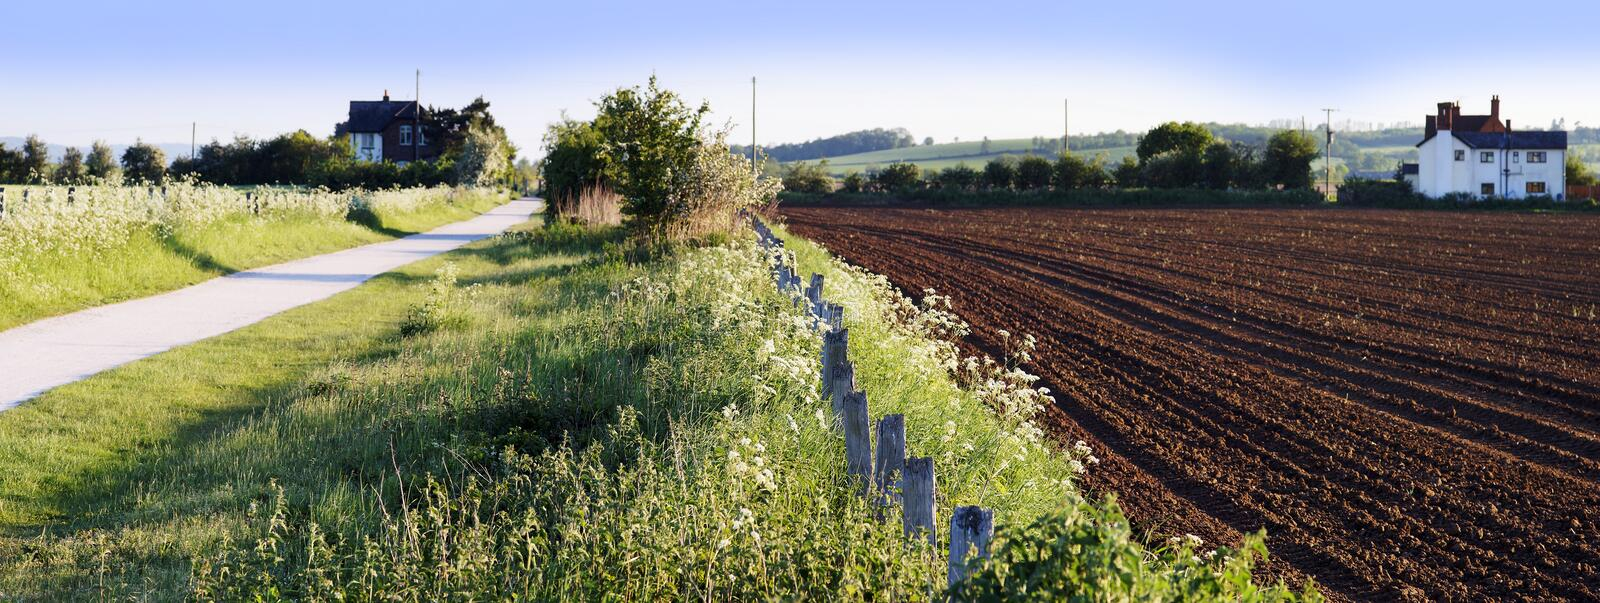 Crops countryside stock images